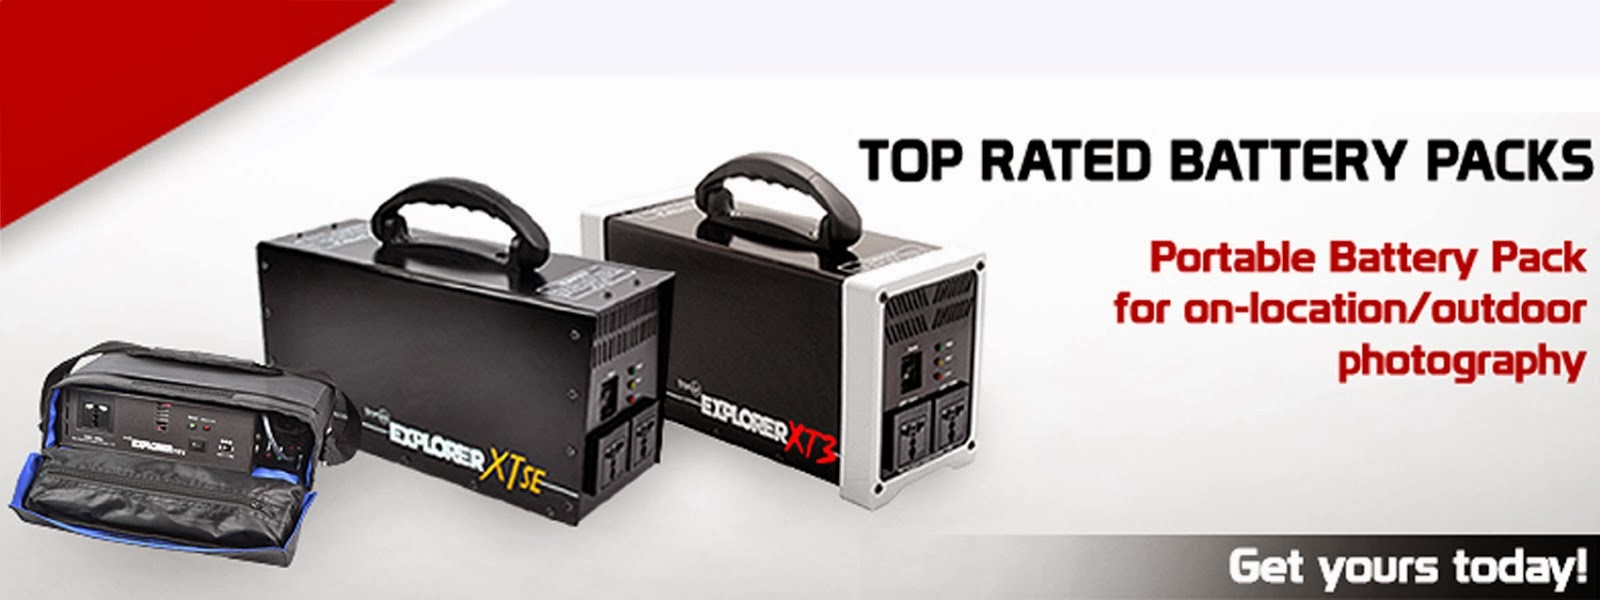 Top Rated Battery Packs from Innovatronix